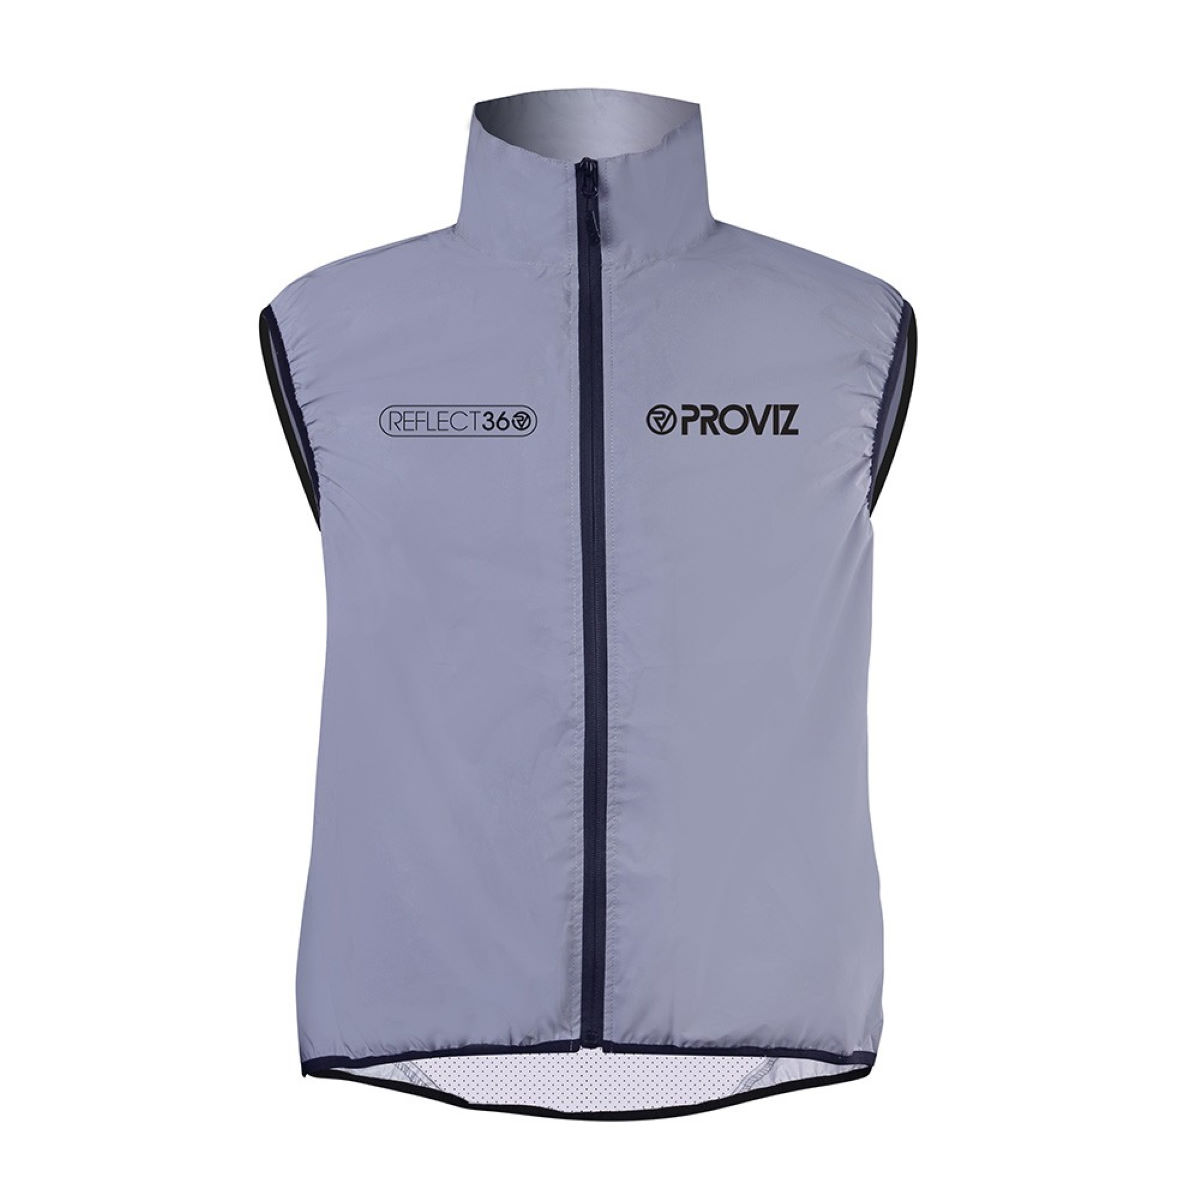 Gilet Proviz Reflect 360 (sans manches) - X Large Reflective